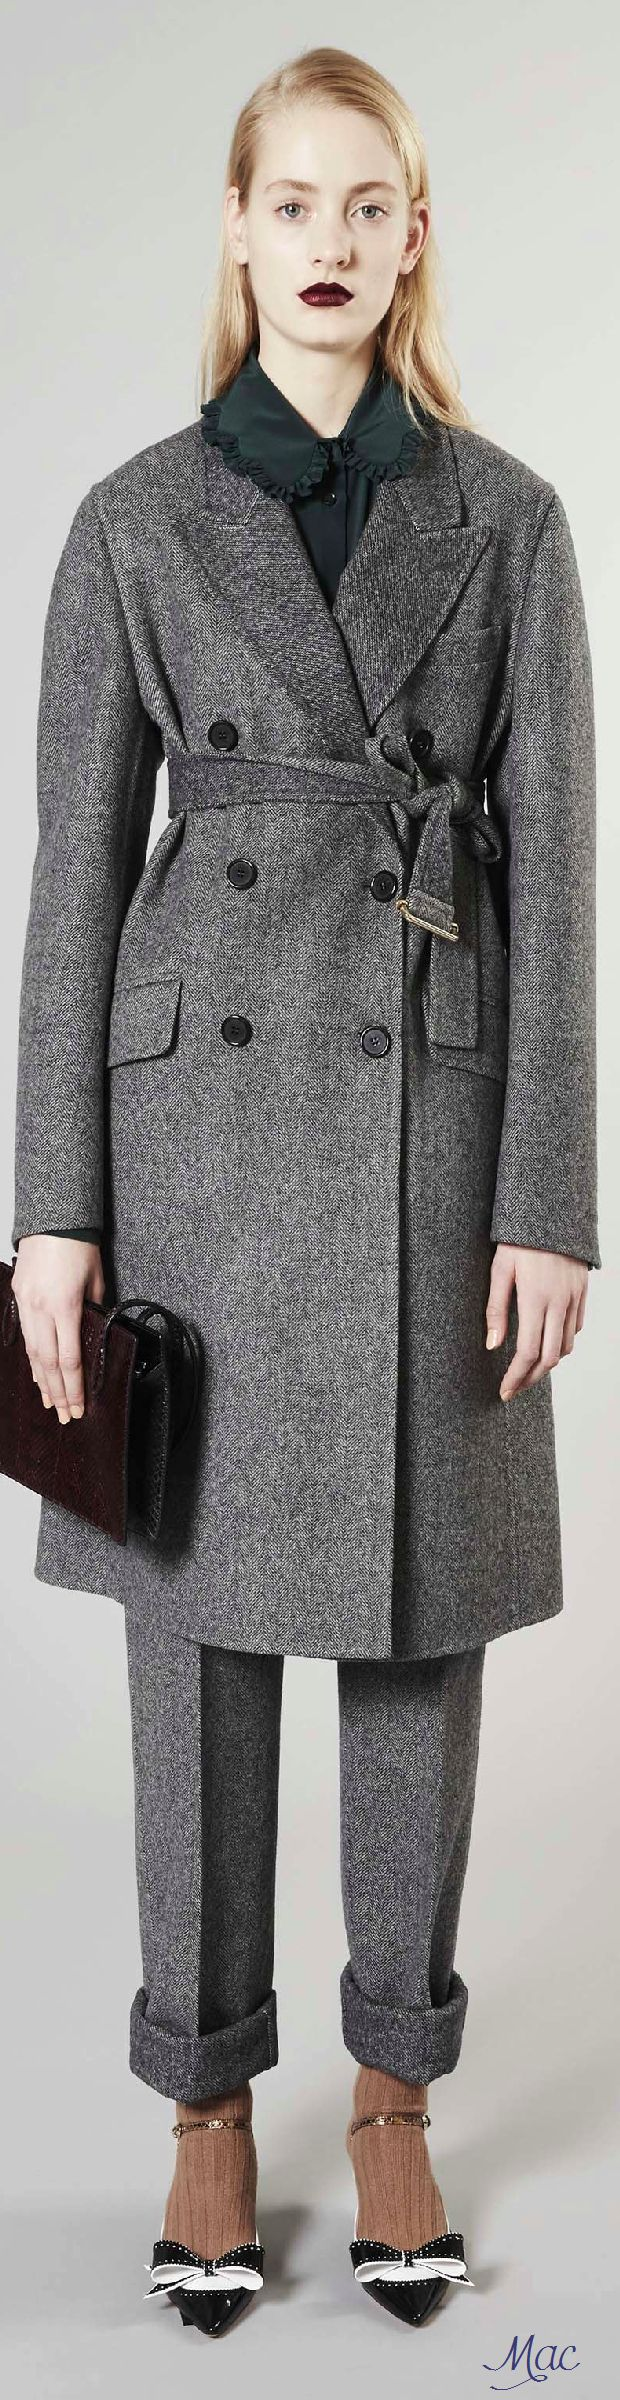 Pre Fall 2016 Rochas Gray Coat Women Fashion Outfit Clothing Style Apparel Roressclothes